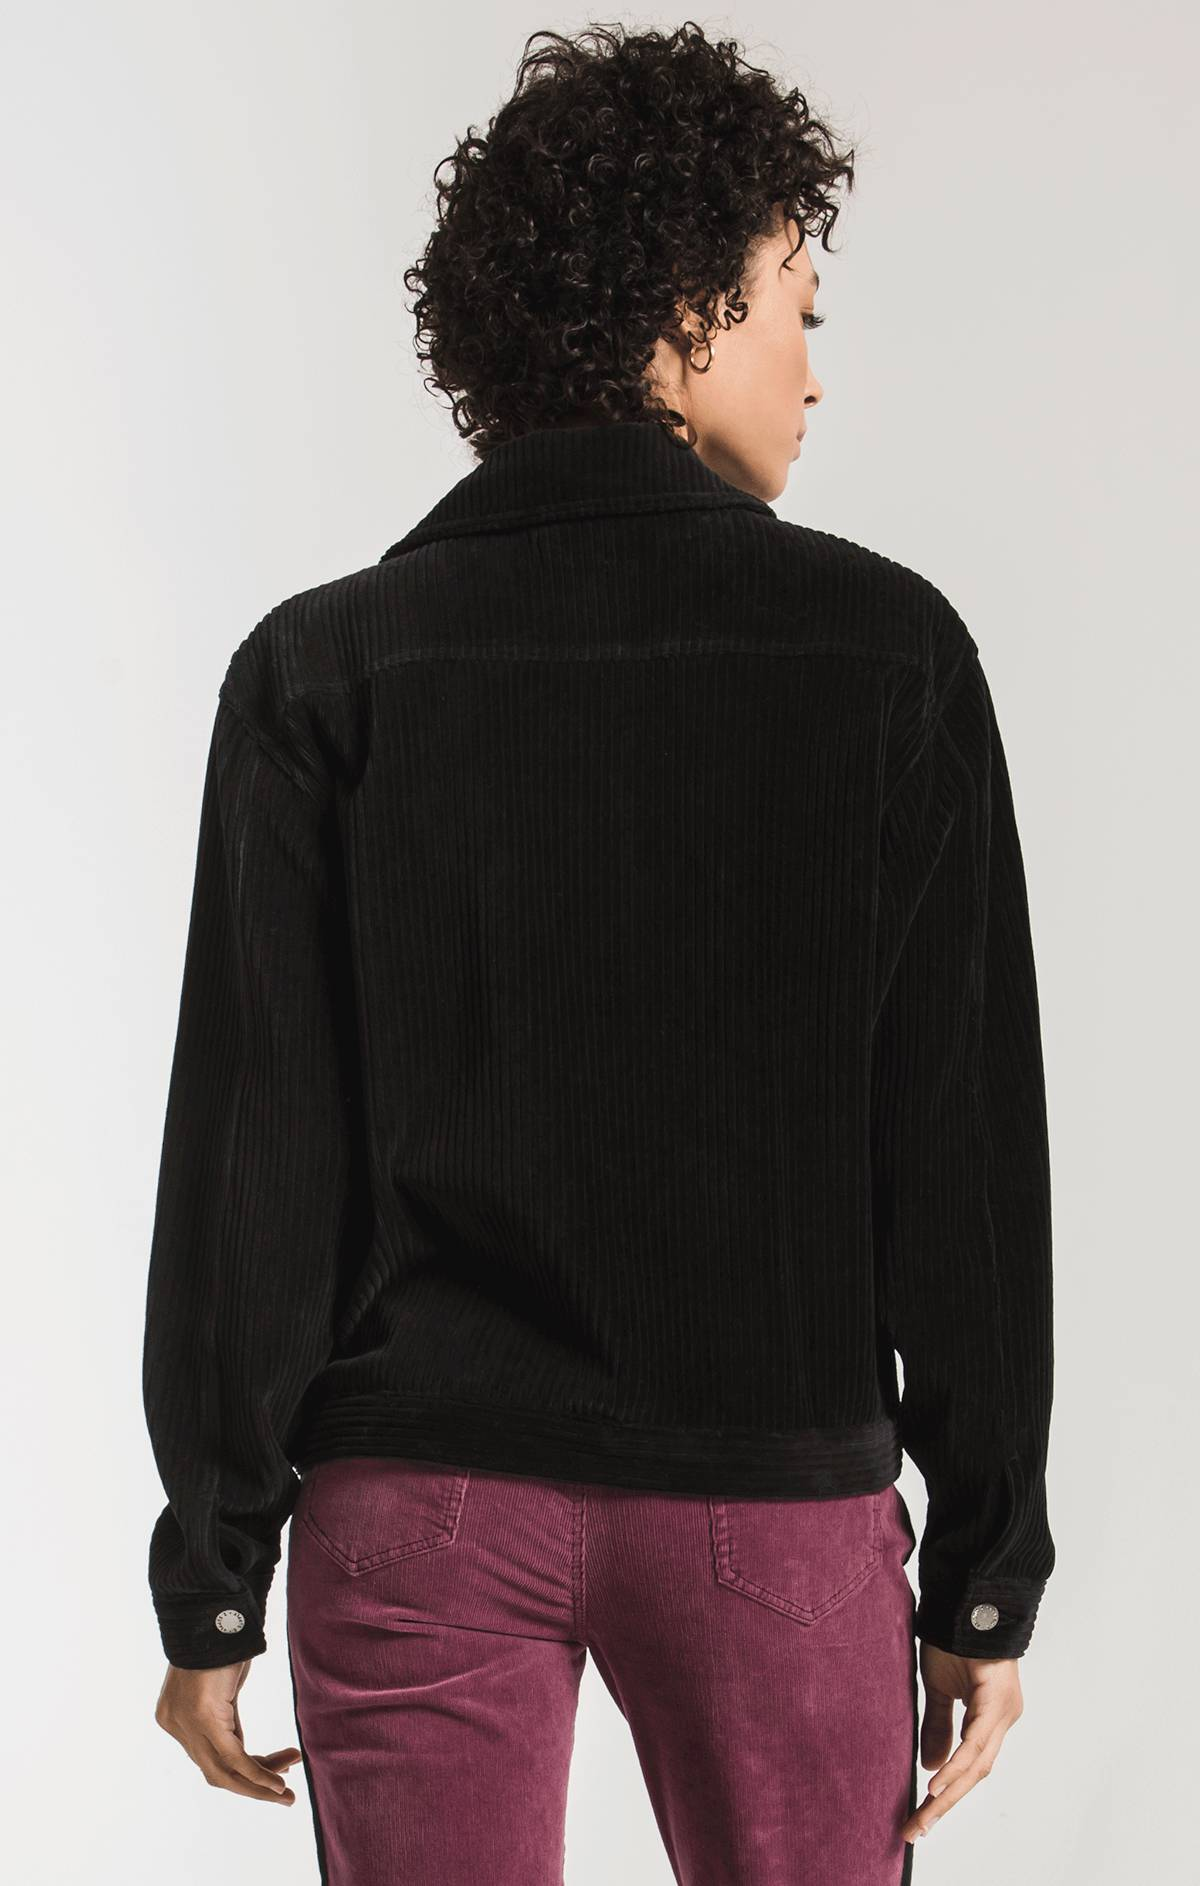 Knit Corduroy Jacket Black